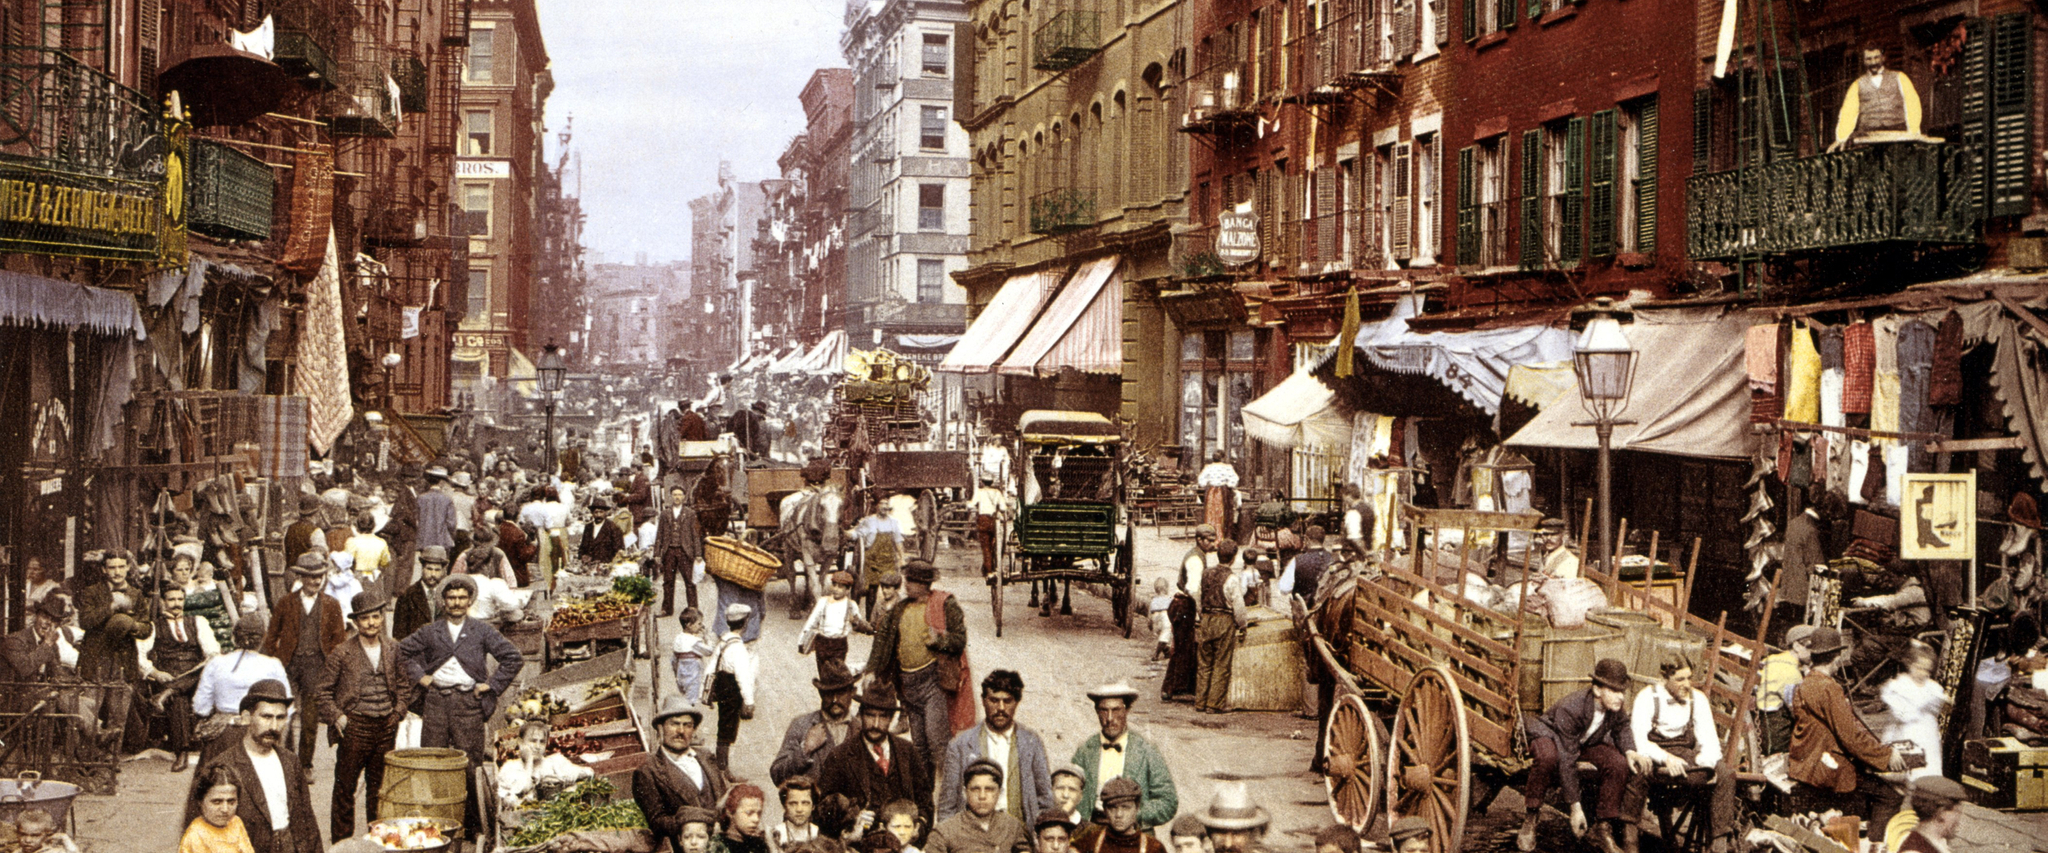 New York's Mulberry Street in 1900